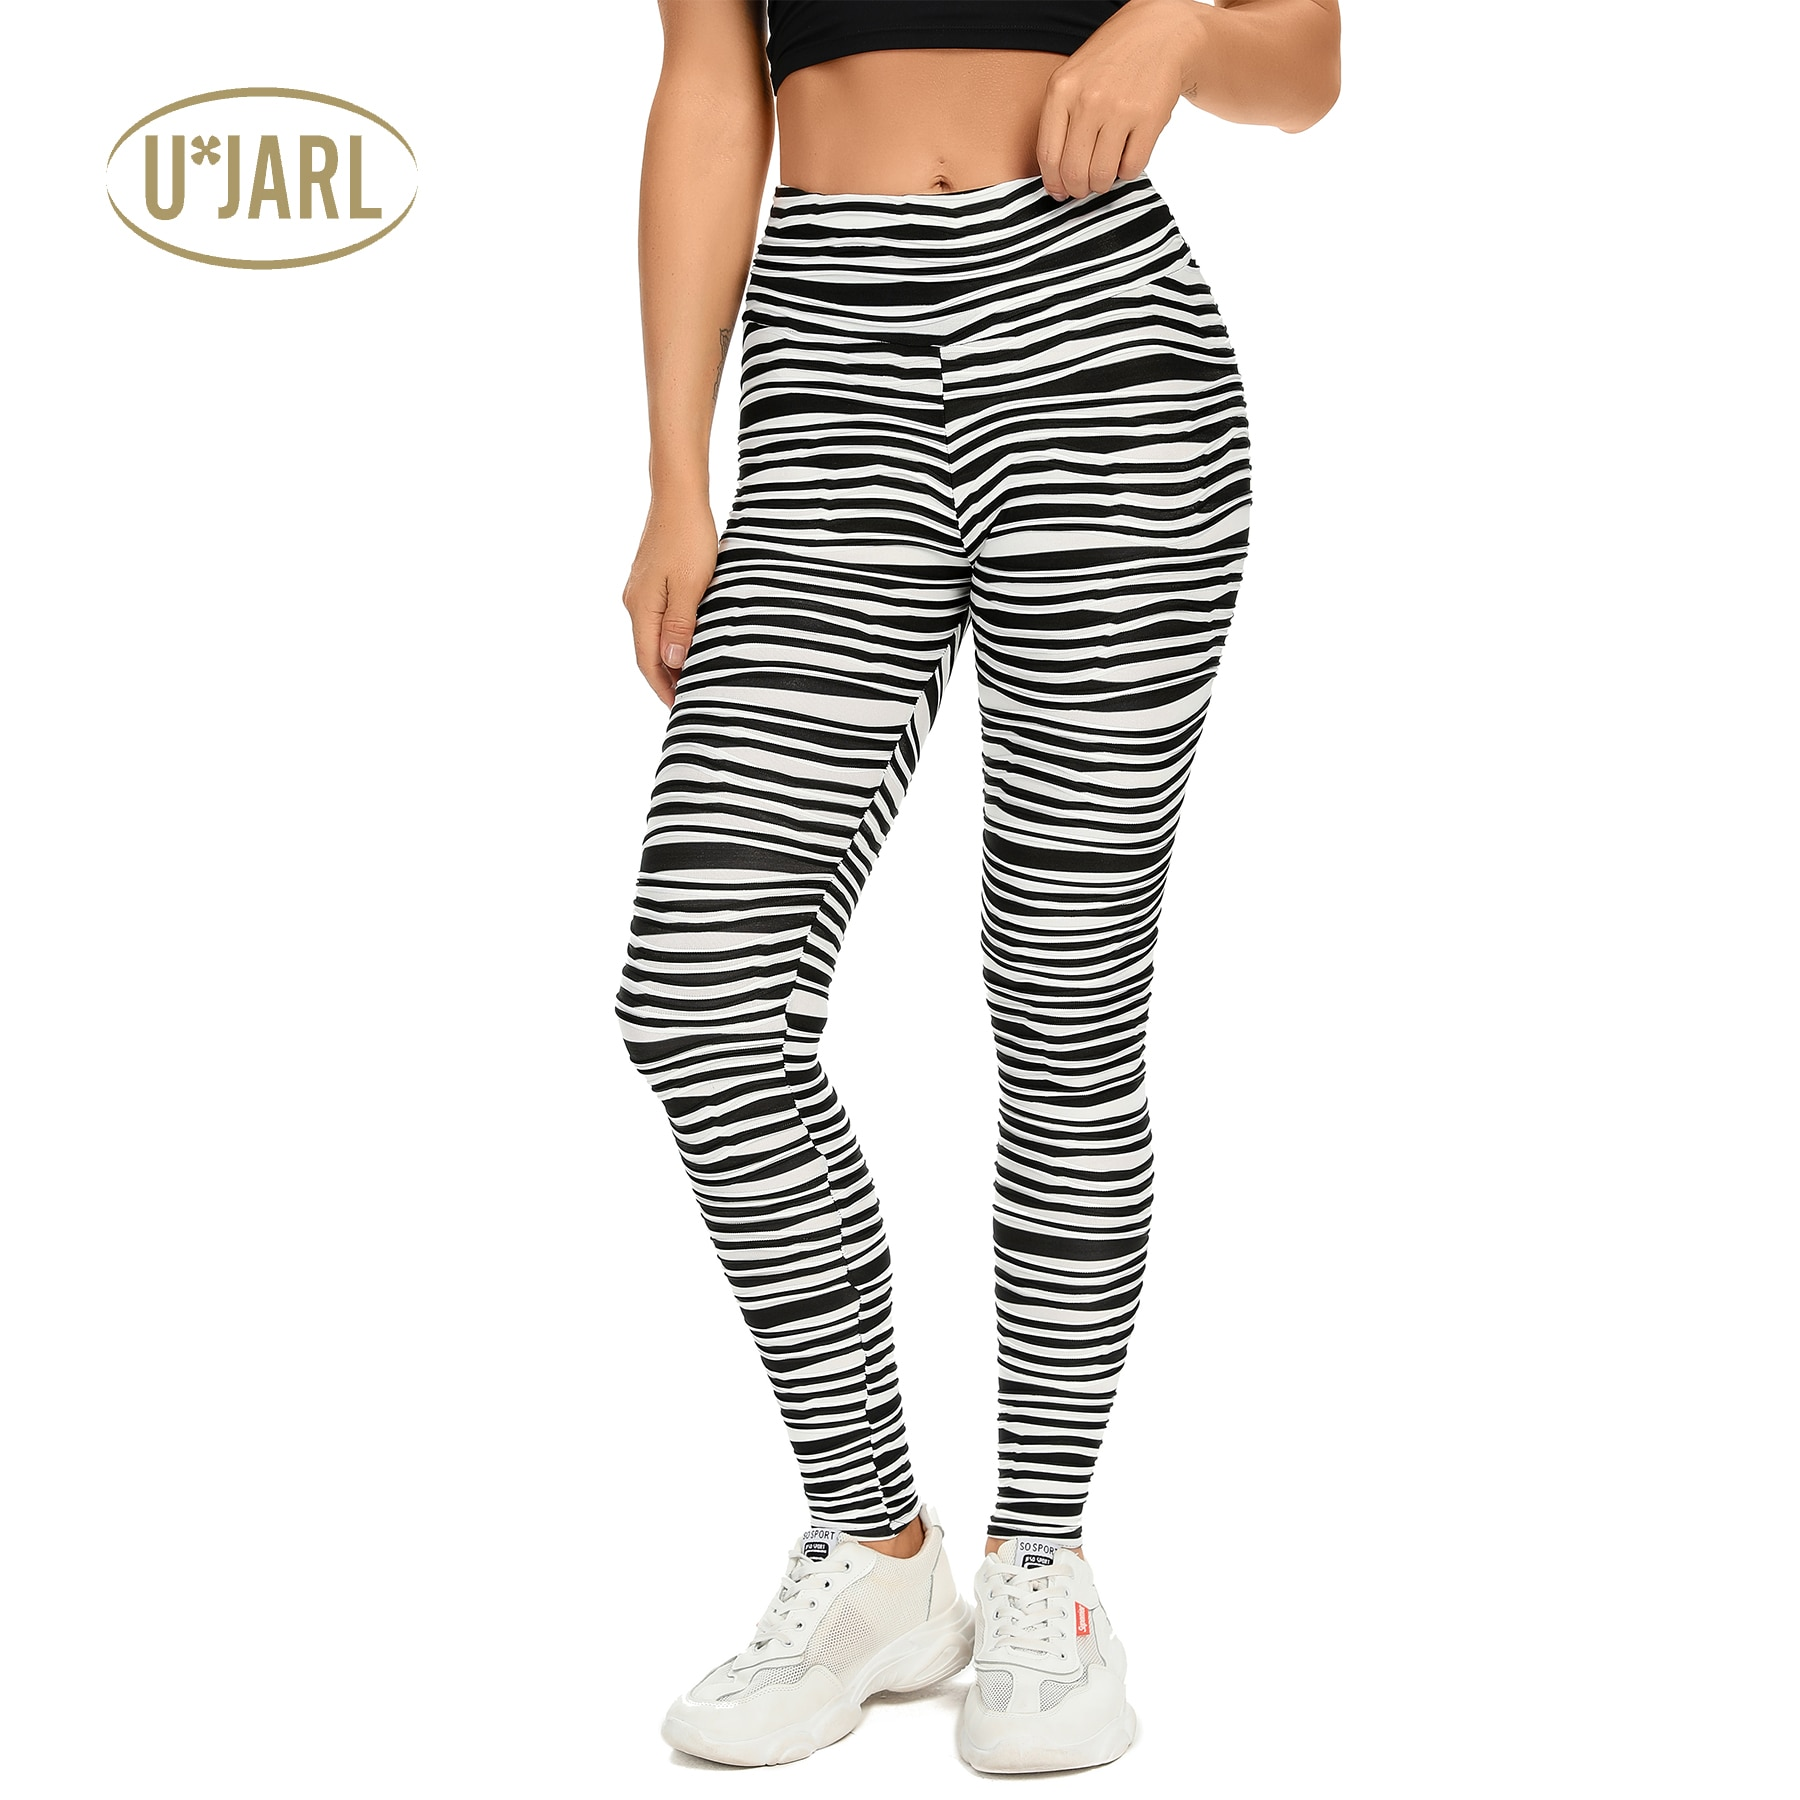 UxJARL Women's Sexy Yoga Pants Compression Leggings High Waist Butt Lifting Tights Fitness Sports We